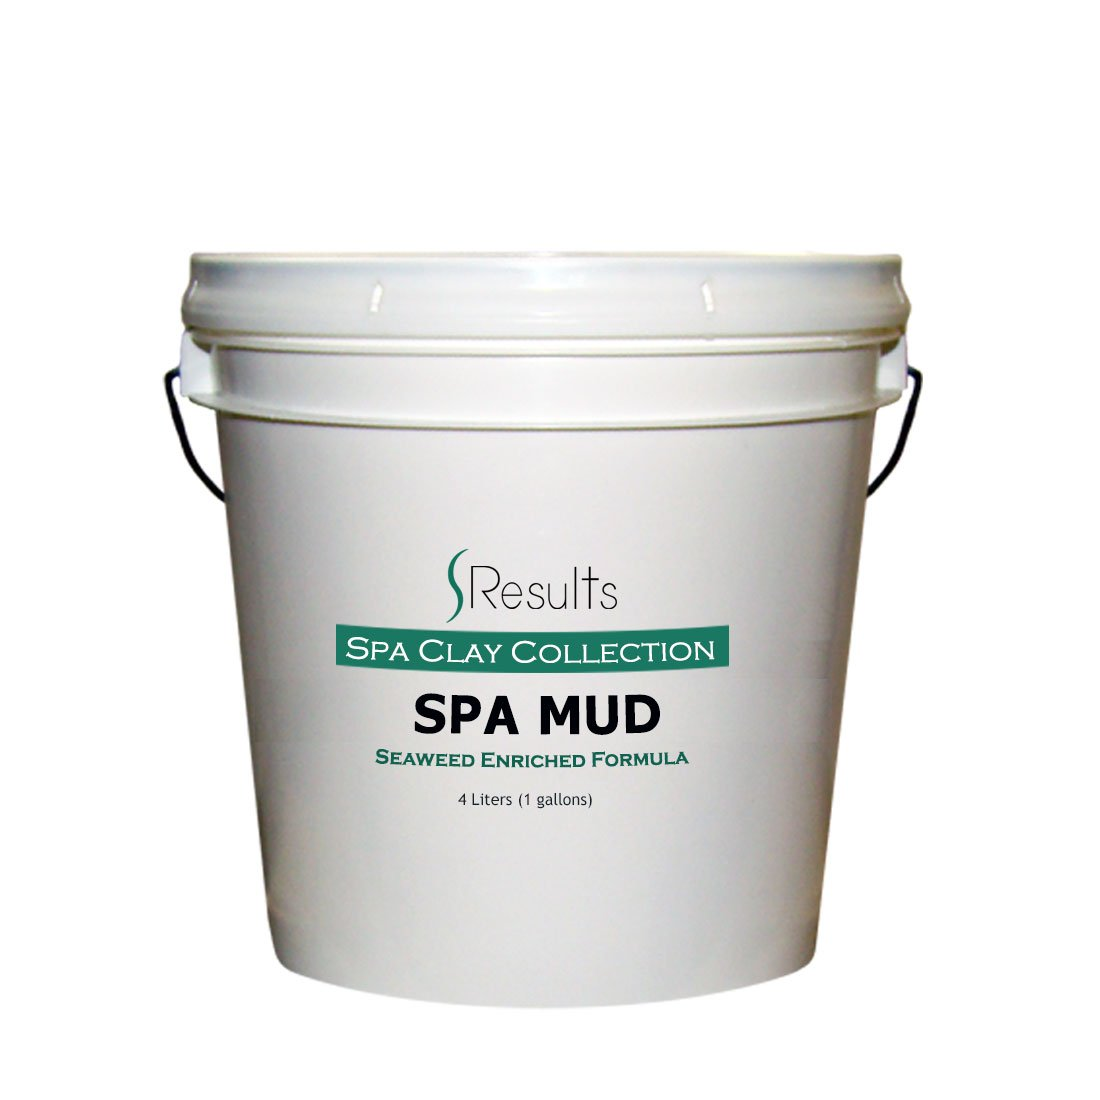 Spa Mud (Seaweed) Body Wrap Detox & Anti-cellulite Slimming Formula - x-large 1 gallon (4 liter) by SResults